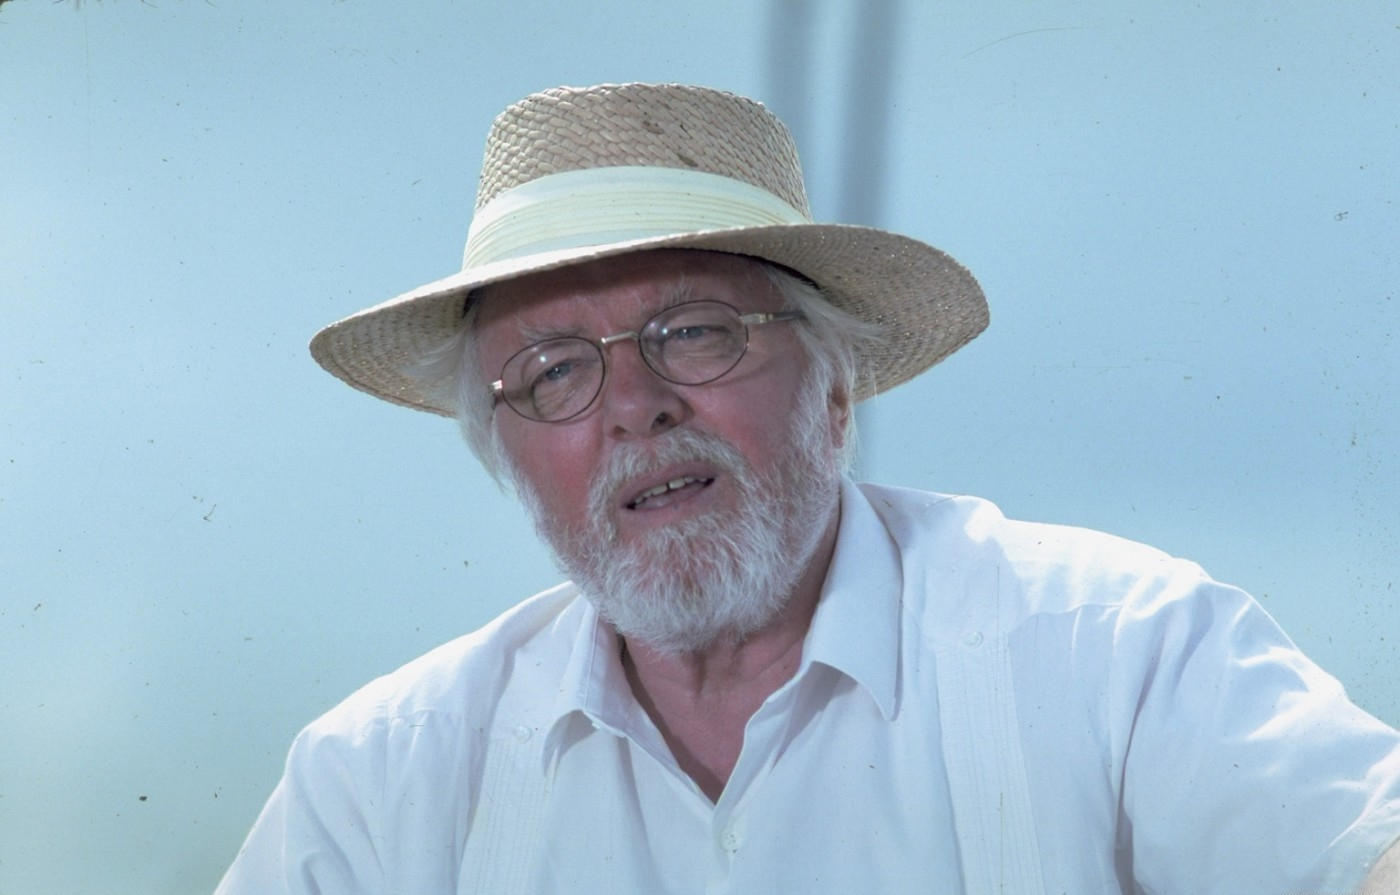 from http://static.origos.hu/s/img/i/1408/20140824richard-attenborough.jpg